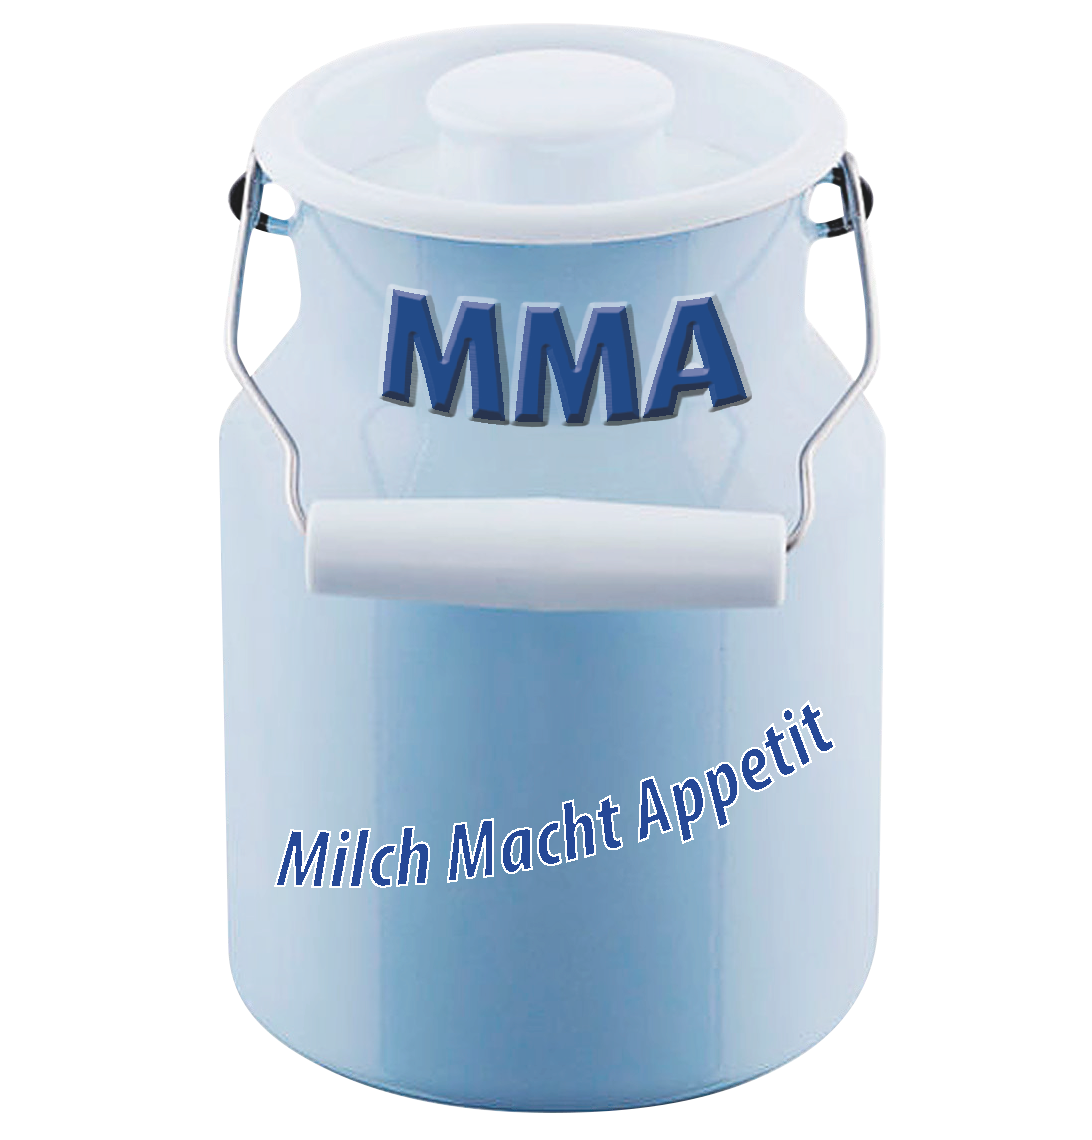 MMA – Milch Macht Appetit GmbH